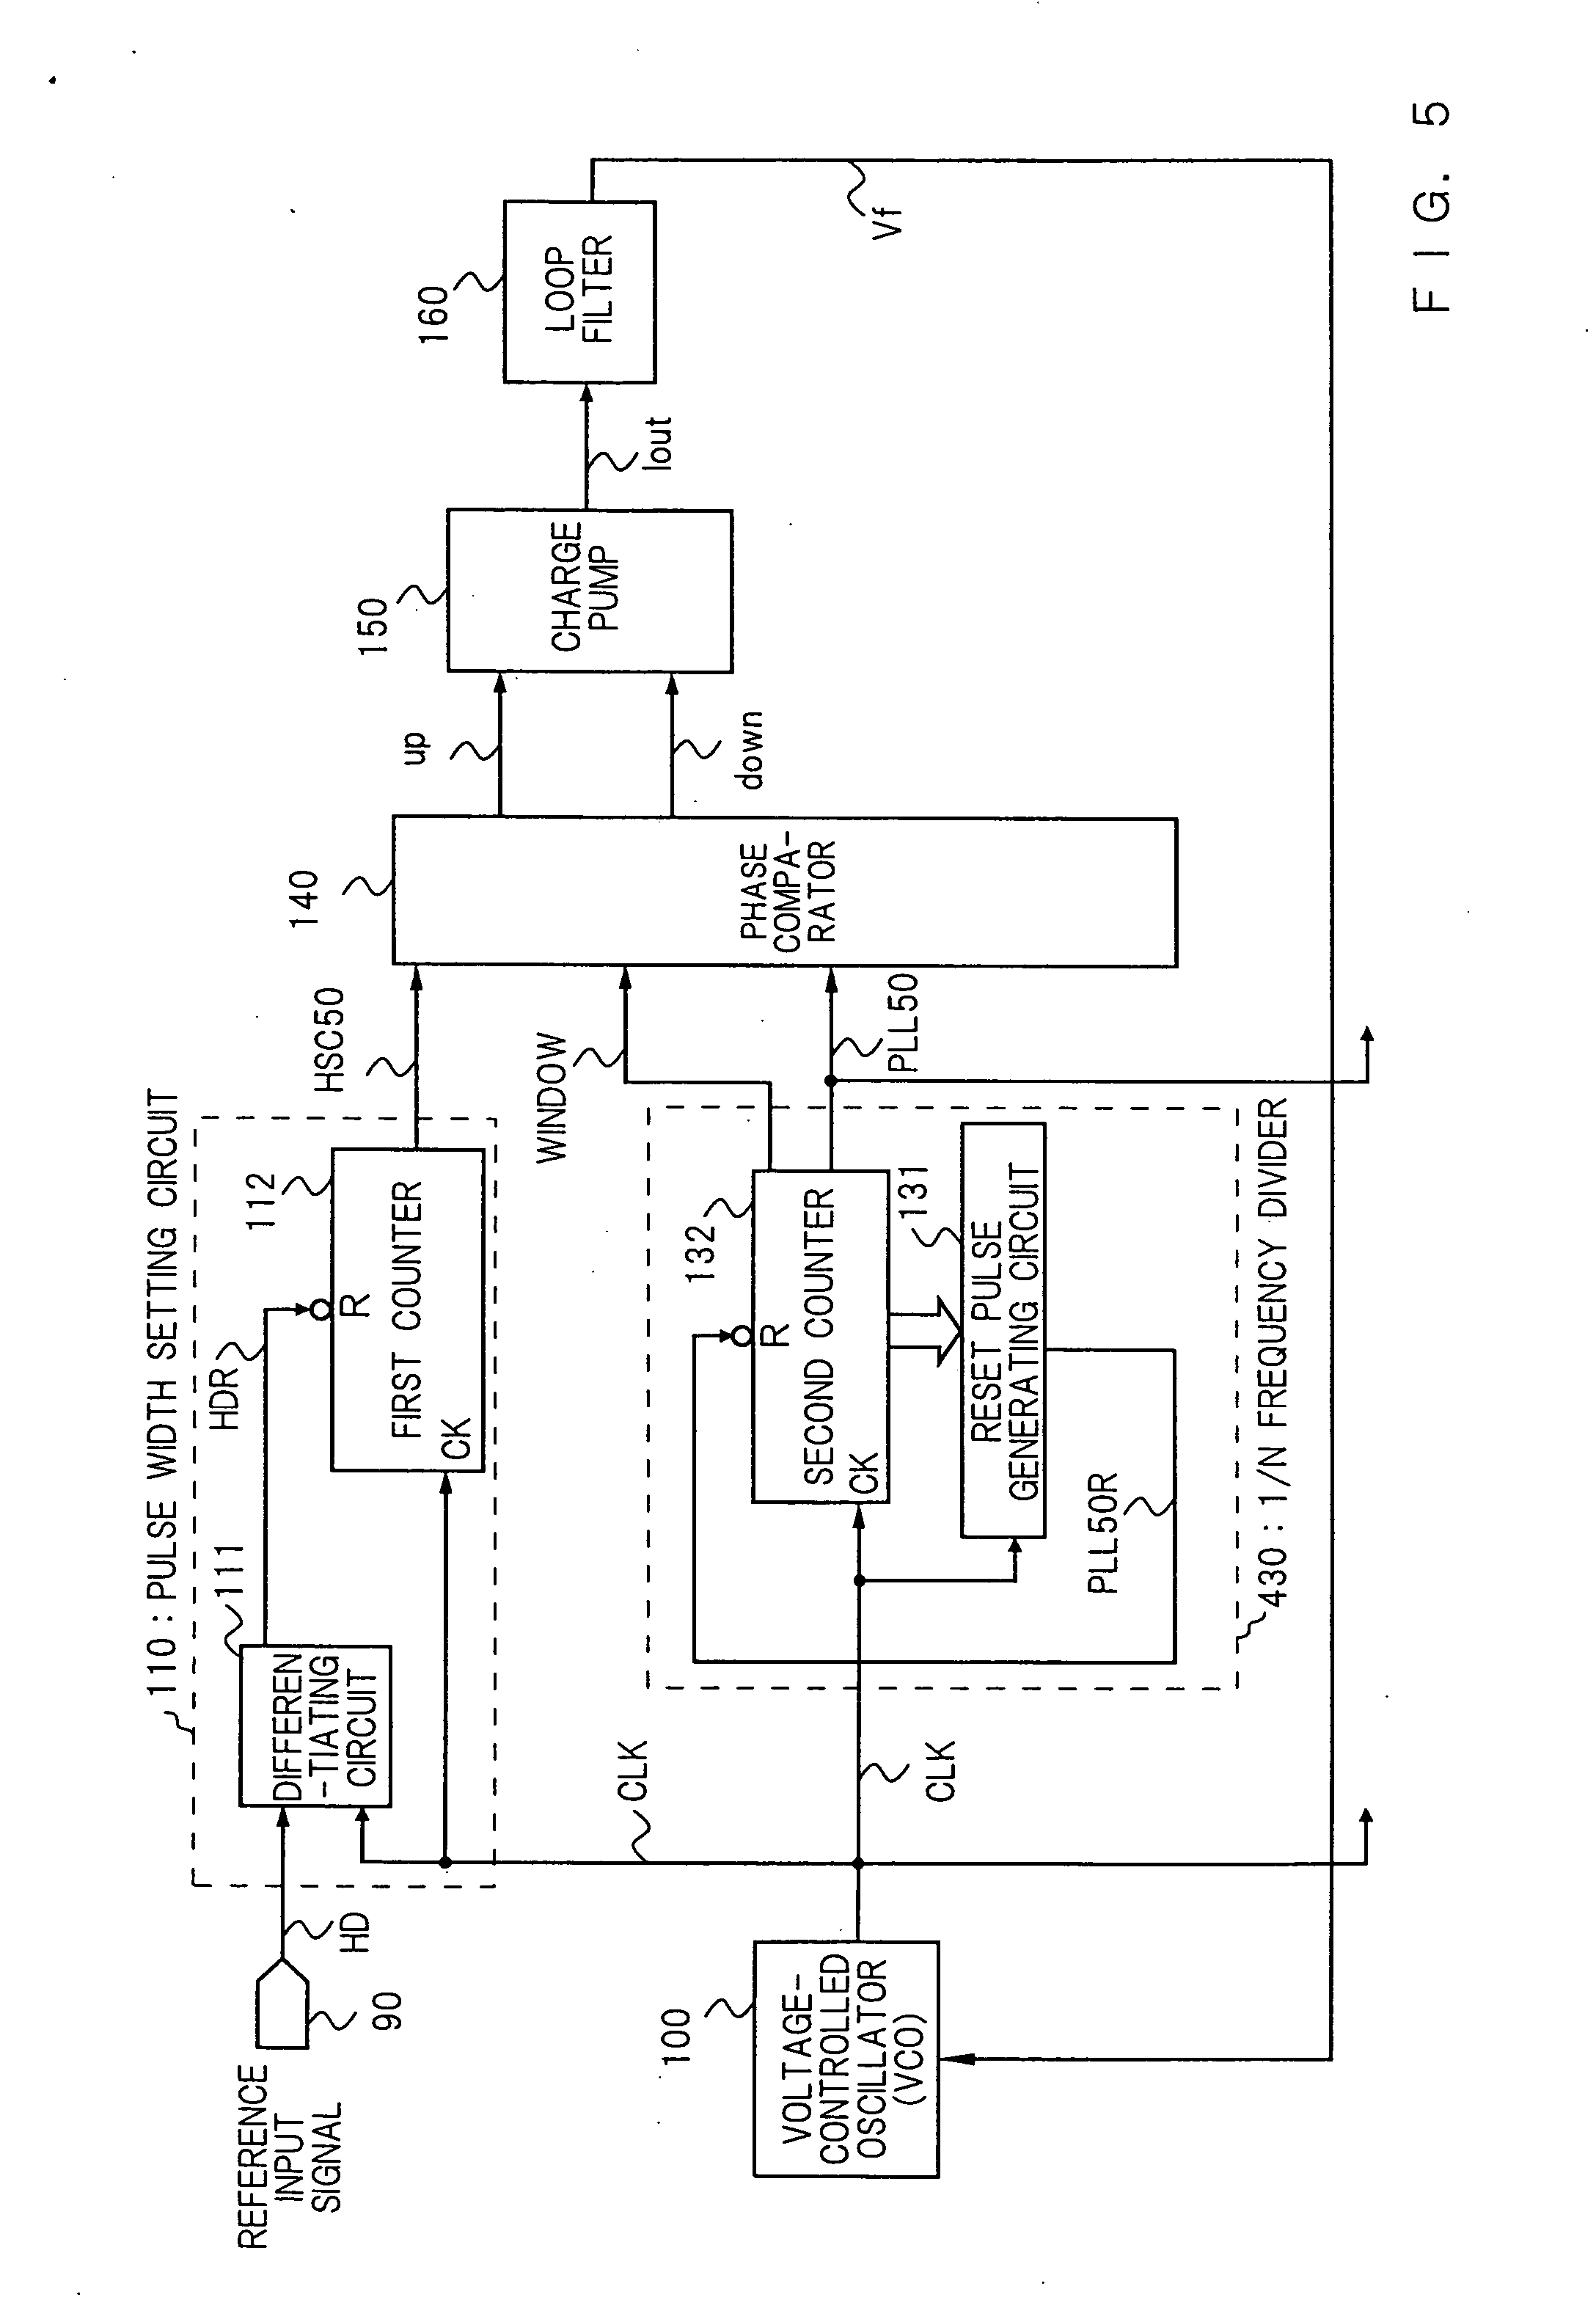 Patent Us20050040872 Pll Circuit And Image Display Device Google Case 430 Ck Wiring Diagram Drawing